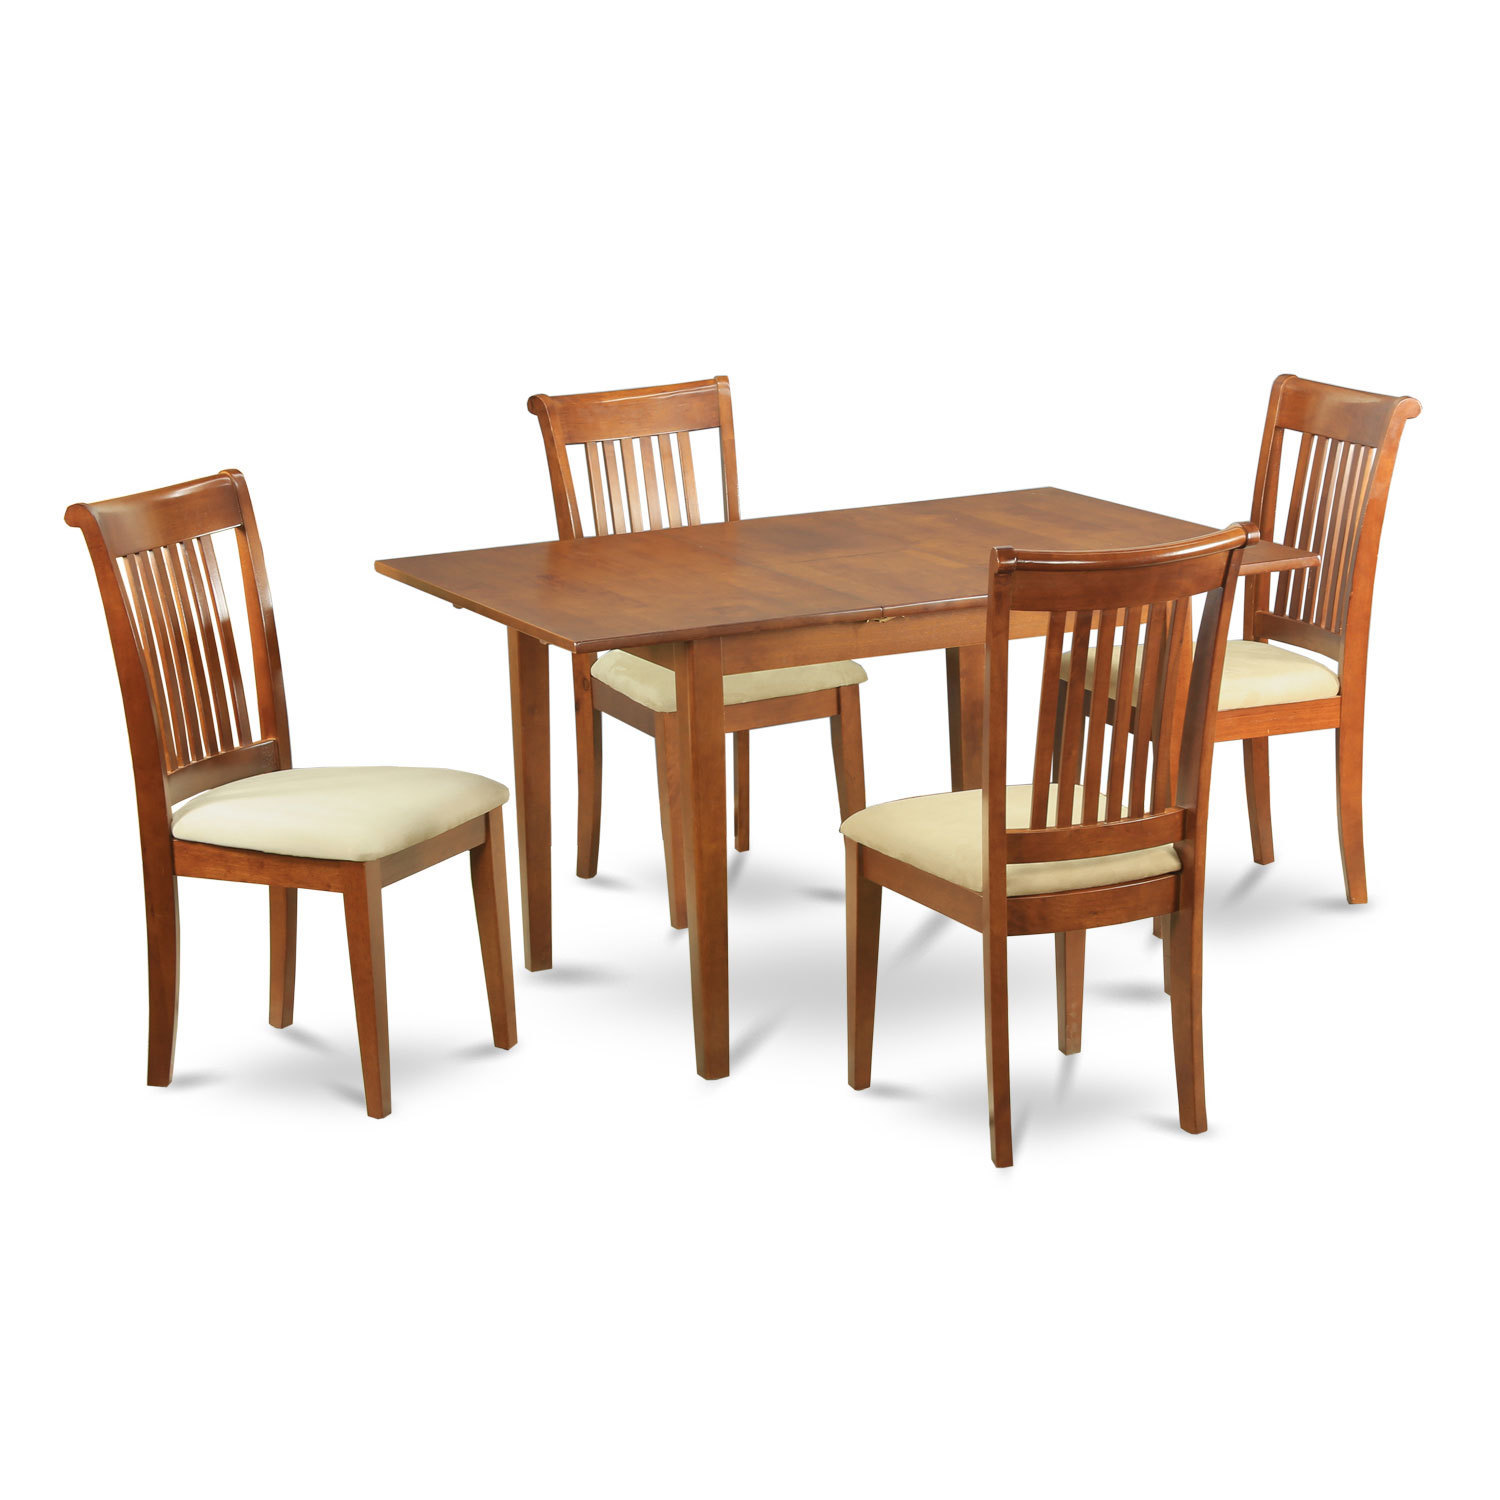 Small dinette set design homesfeed for Small dining sets for 4